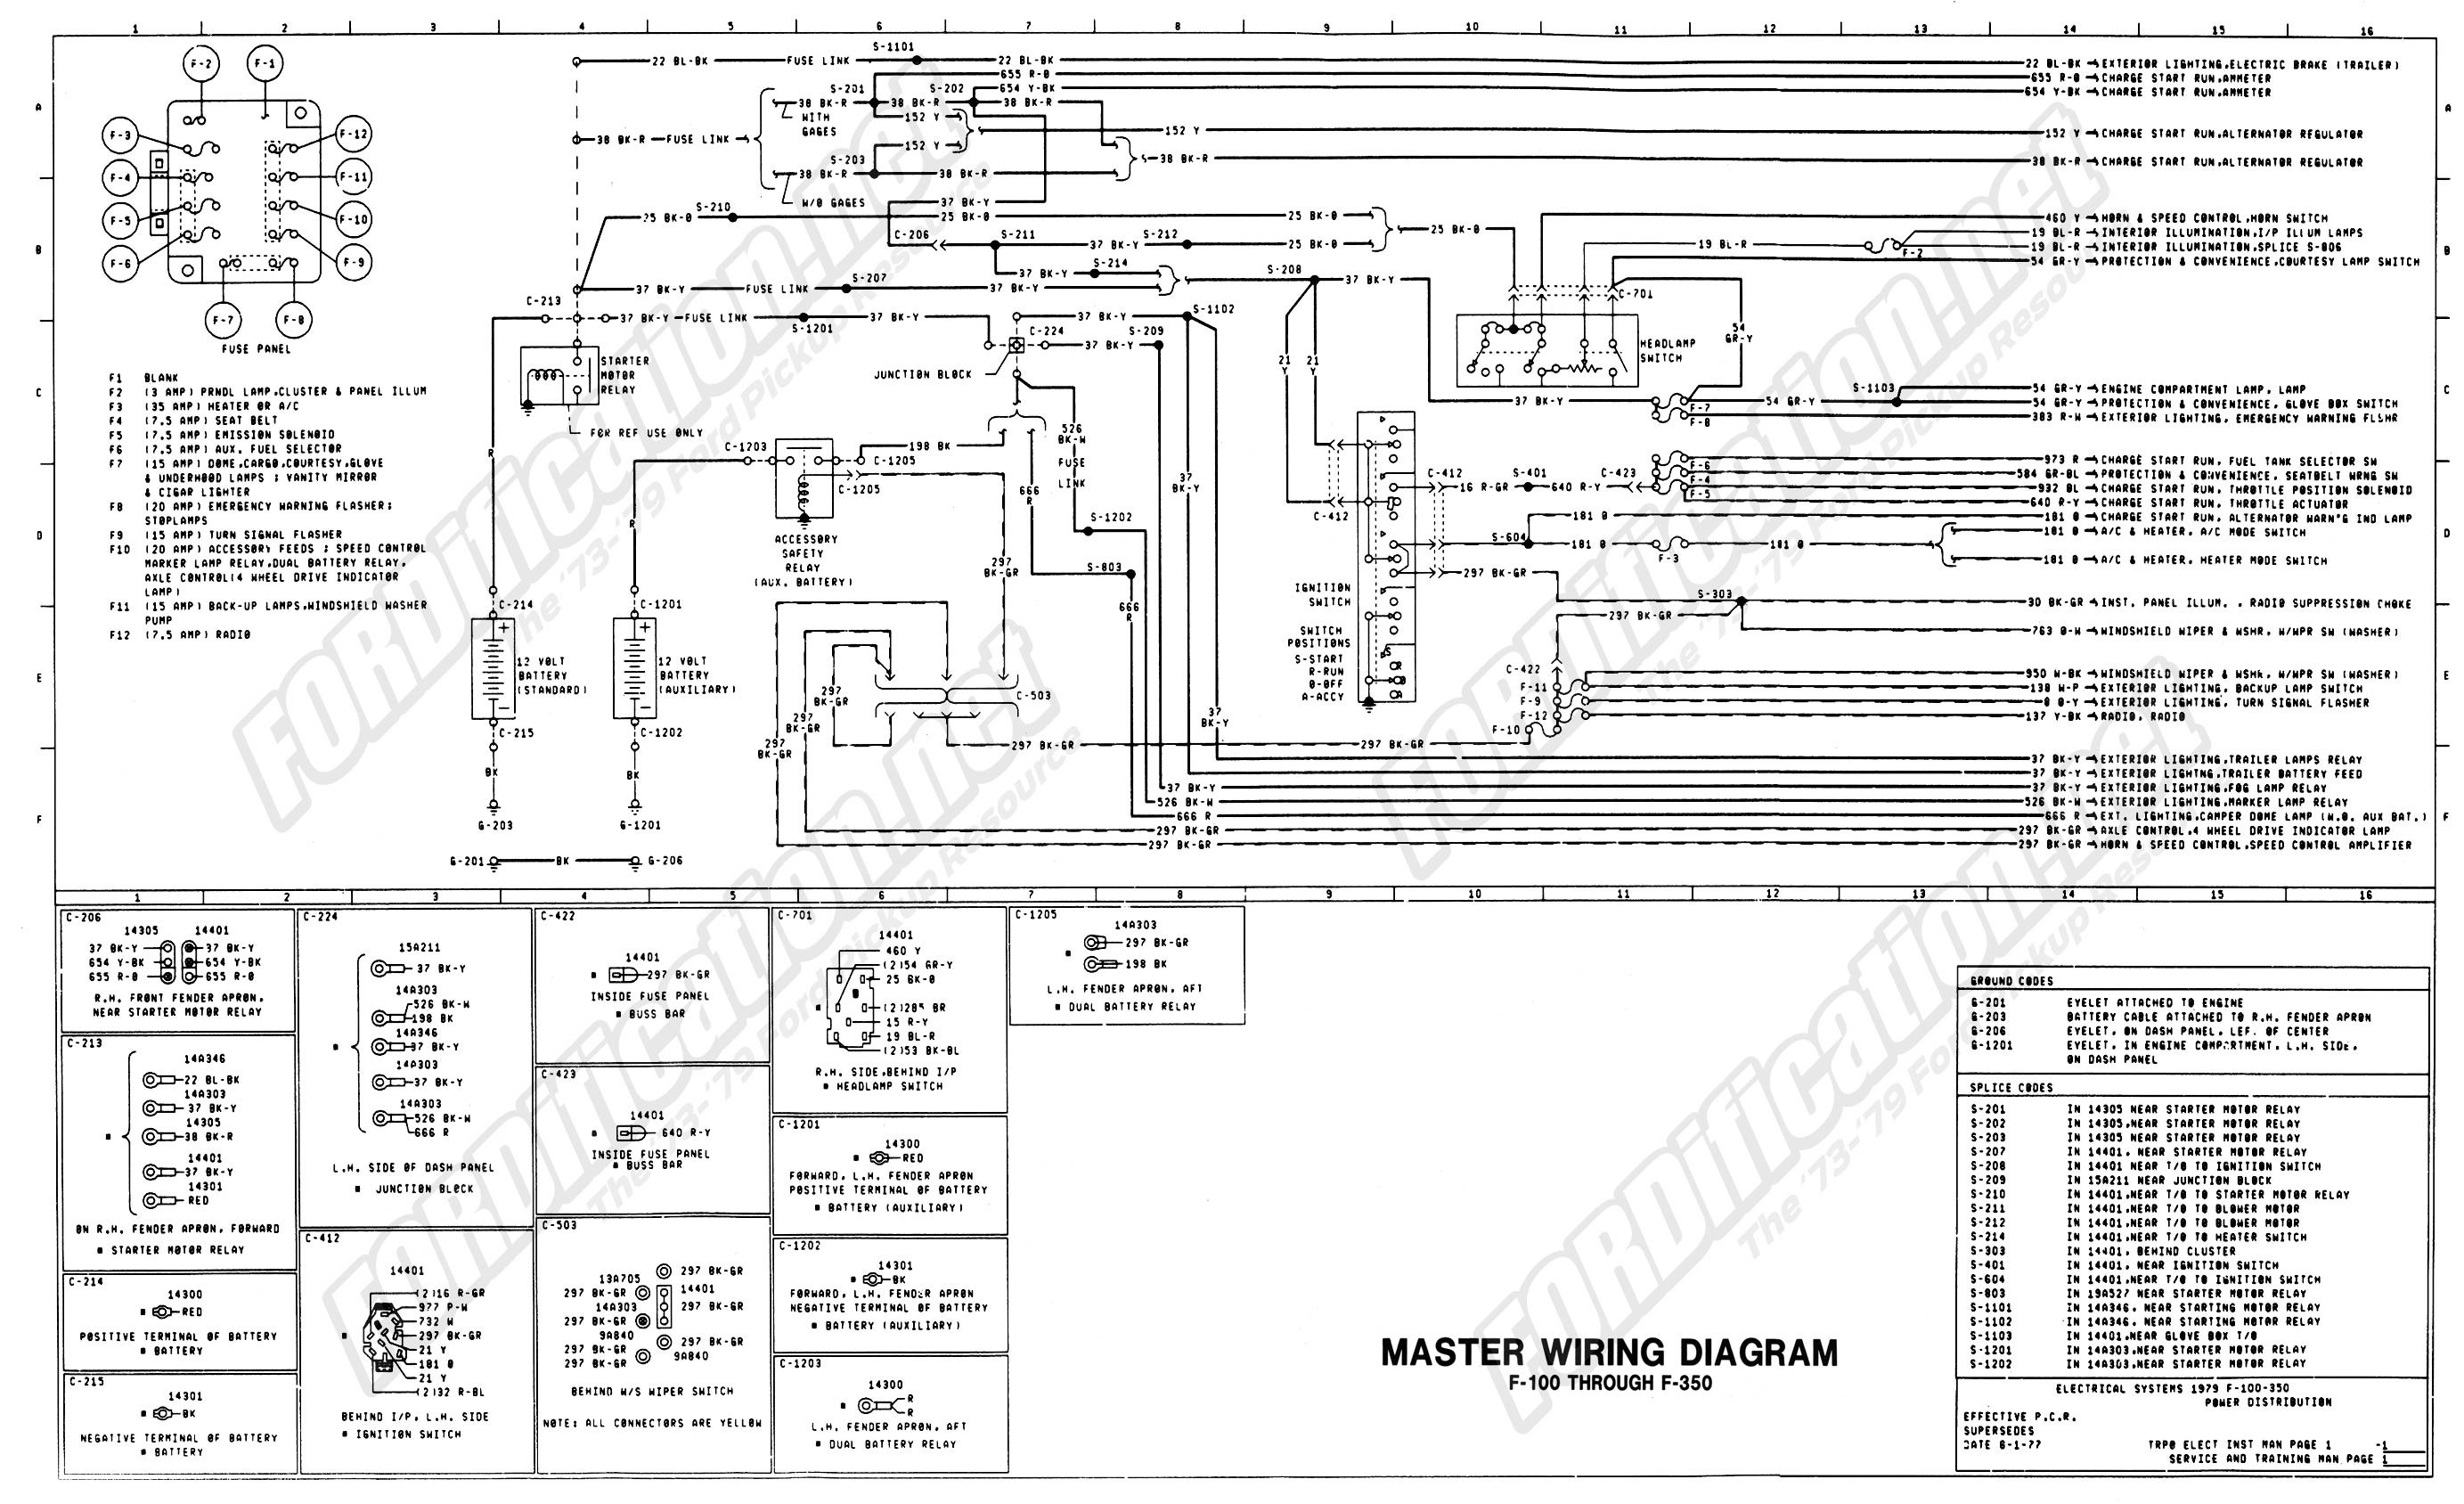 1998 ford F150 Pickup Truck Car Radio Wiring Diagram | My Wiring DIagram